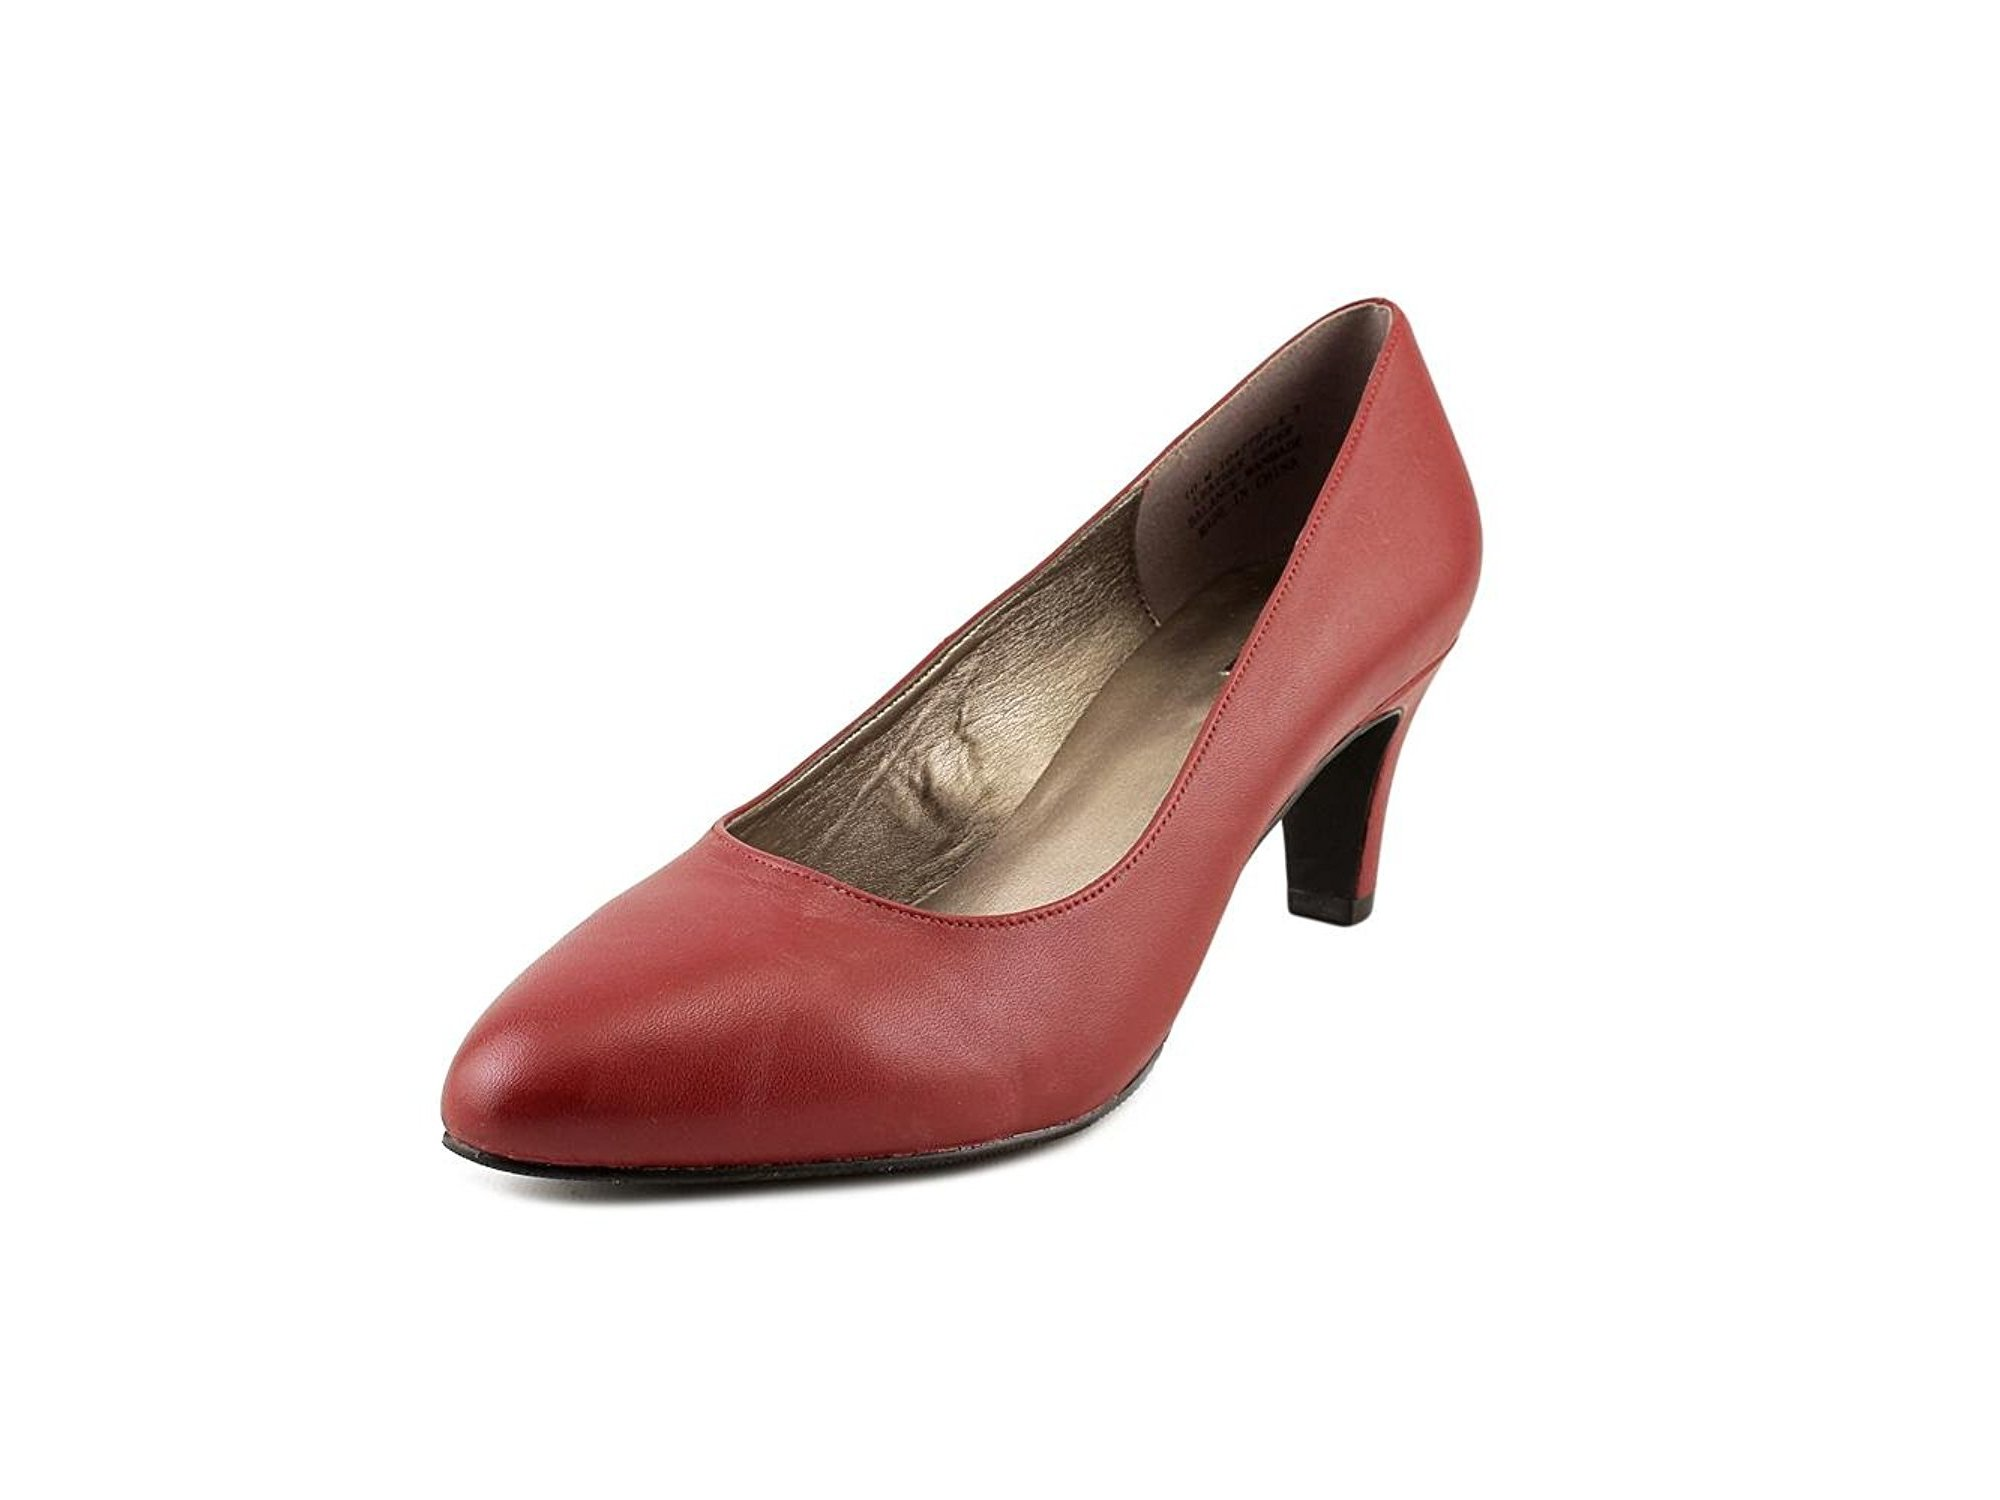 Array Donna Rose Pelle Pointed Pumps, Toe Classic Pumps, Pointed , 093026